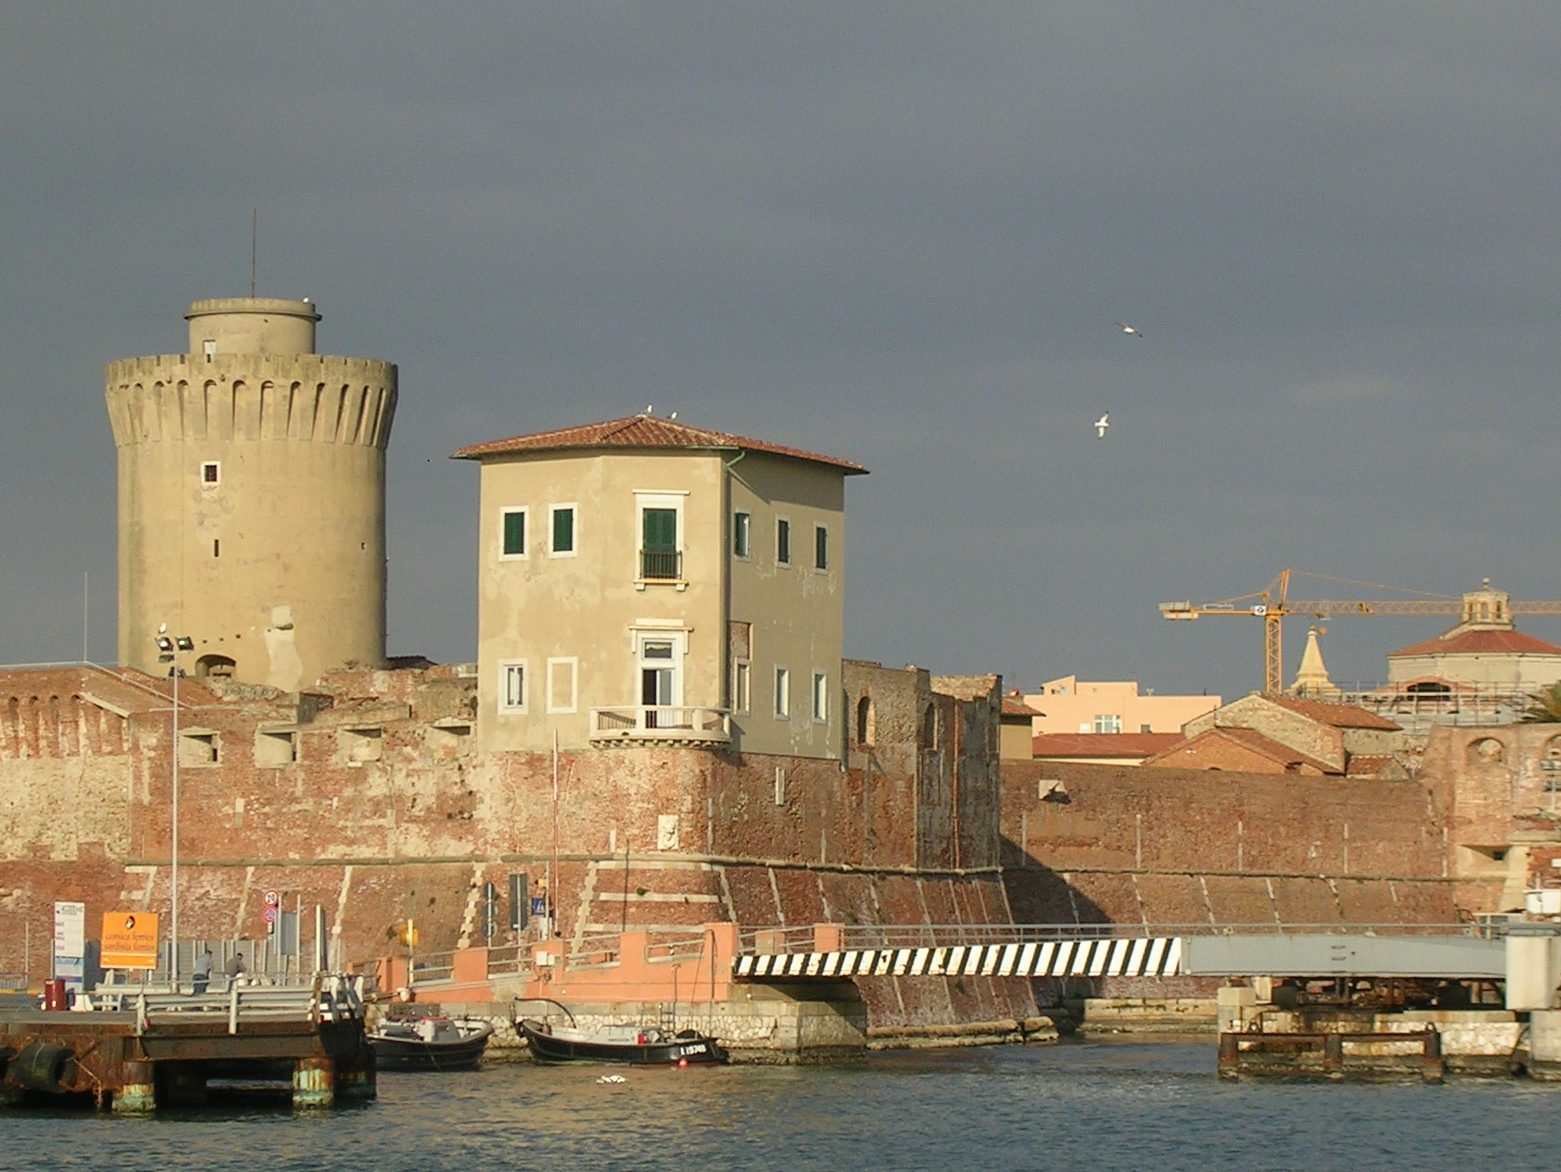 visite gratuite livorno Port center